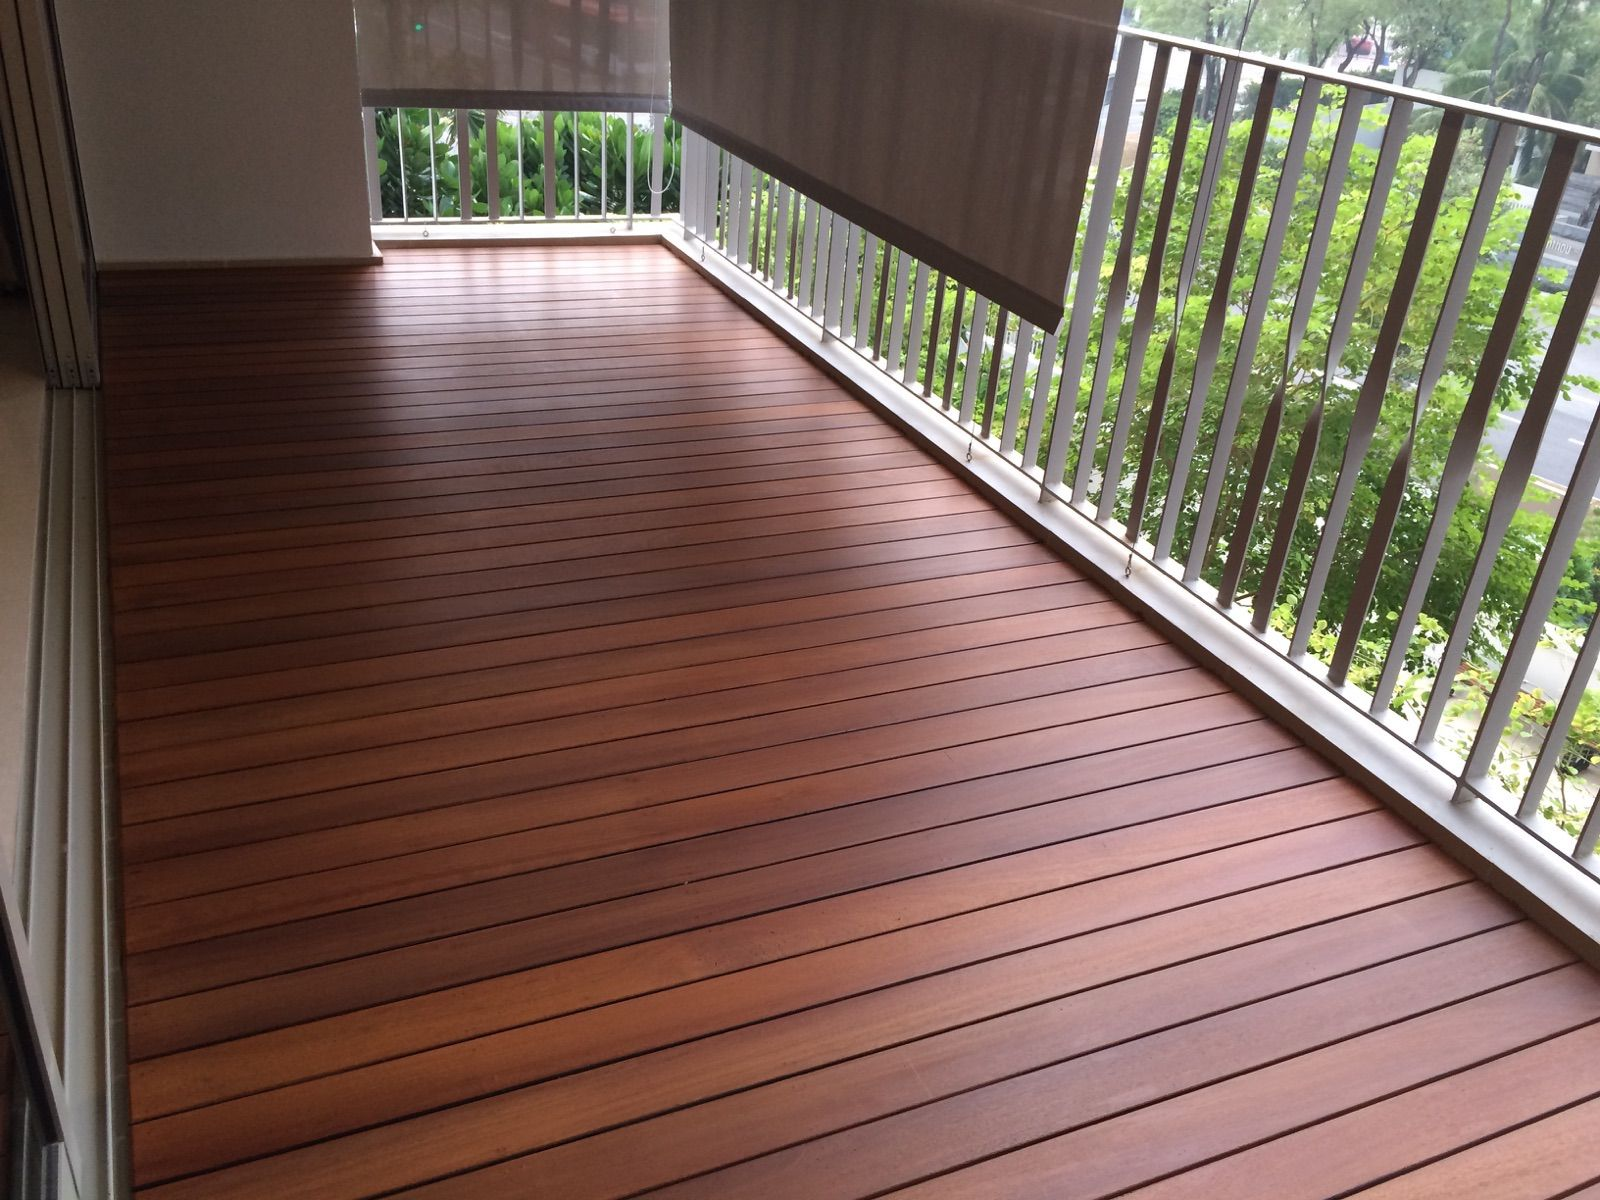 Composite decking tiles prices wpc decking composite deck outdoorbalcony flooring with nice ideas and color options mesmerizing solid wood balcony flooring idea for apartment feat metal railing dailygadgetfo Images